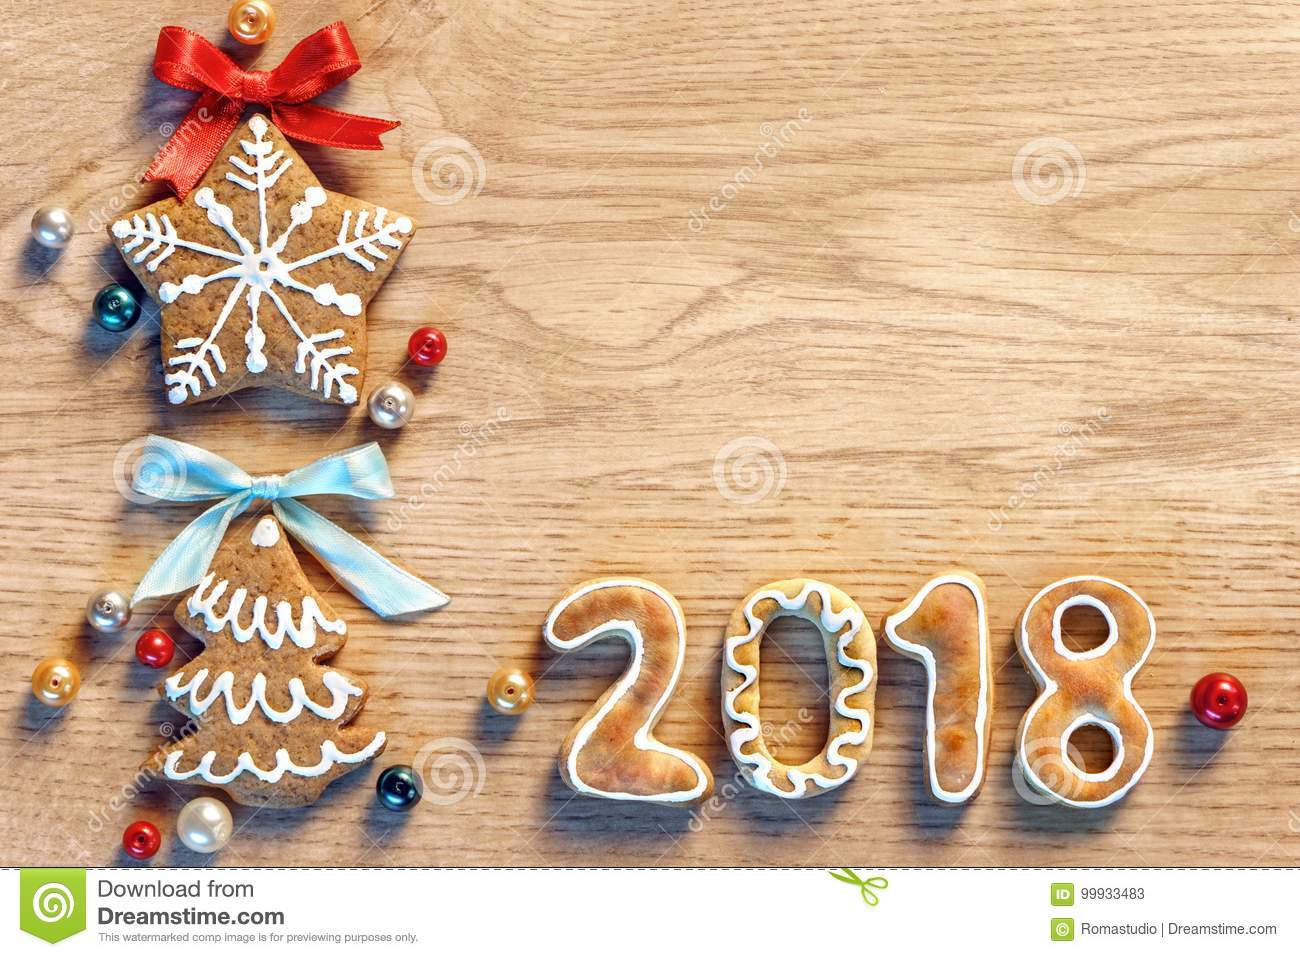 Merry Christmas And Happy New Year 2018! Stock Image - Image of ...